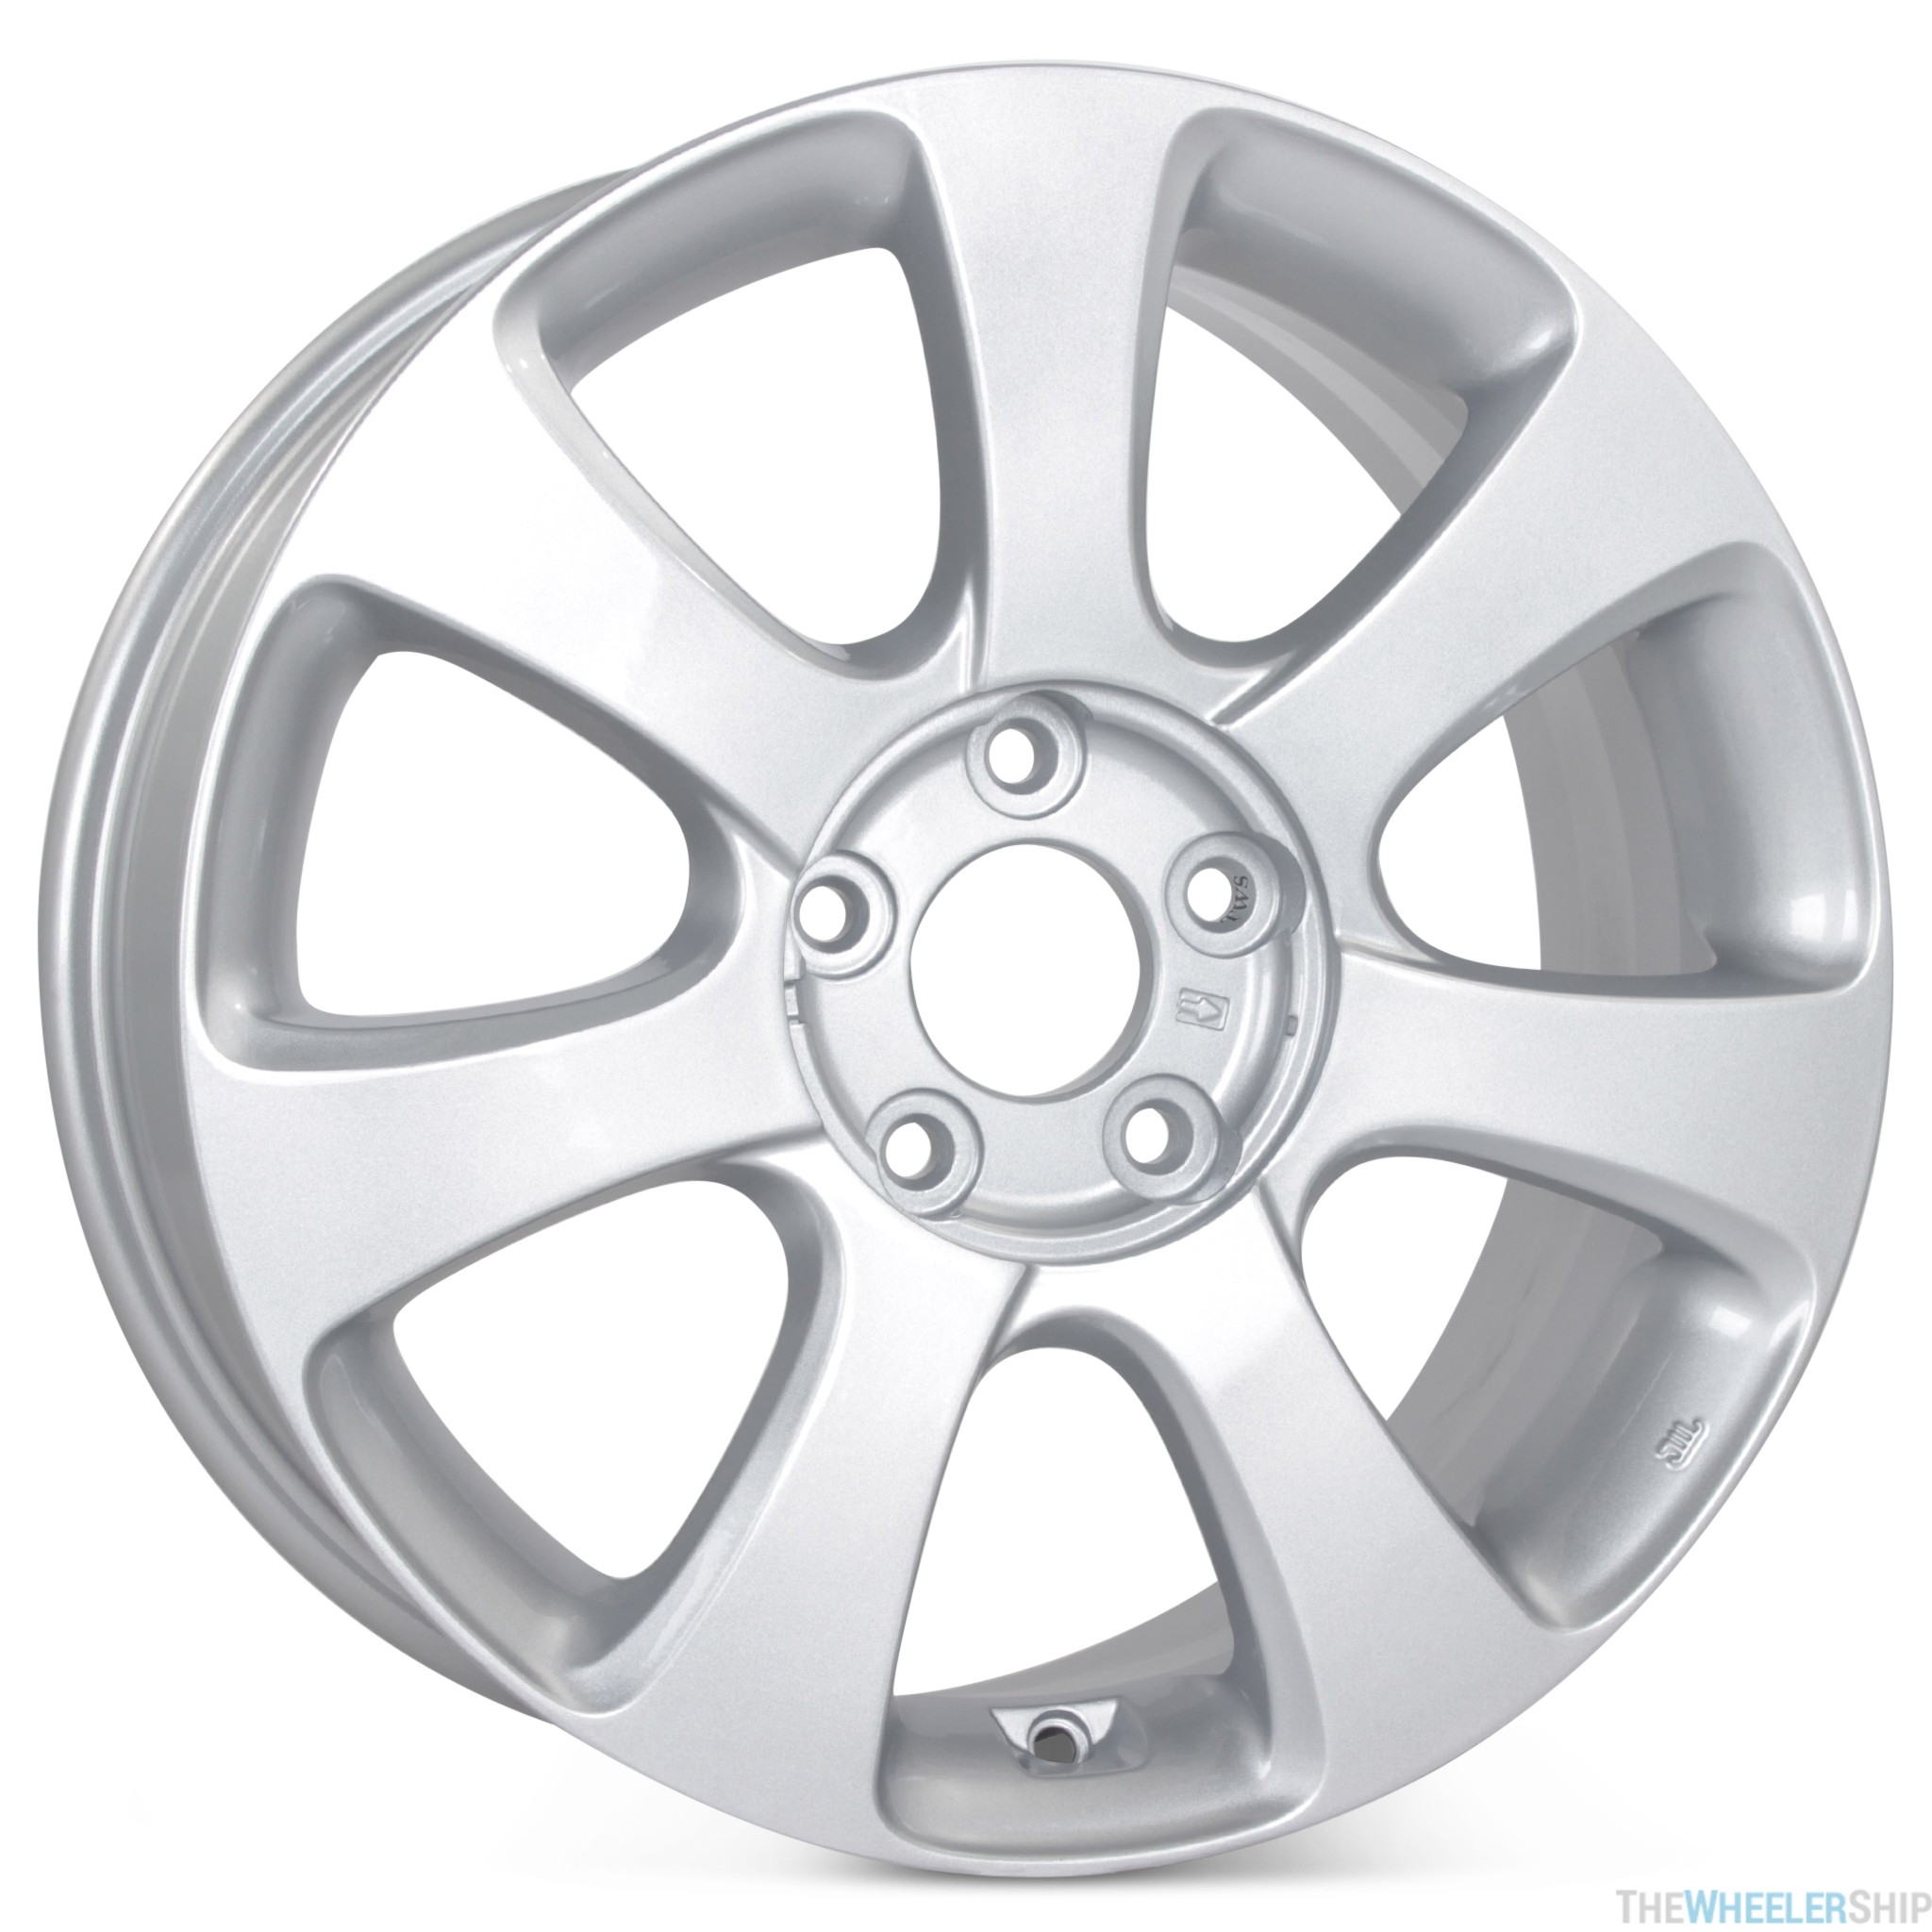 2011 2012 hyundai elantra rims hyundai elantra alloy wheels ML350 Rims AMG